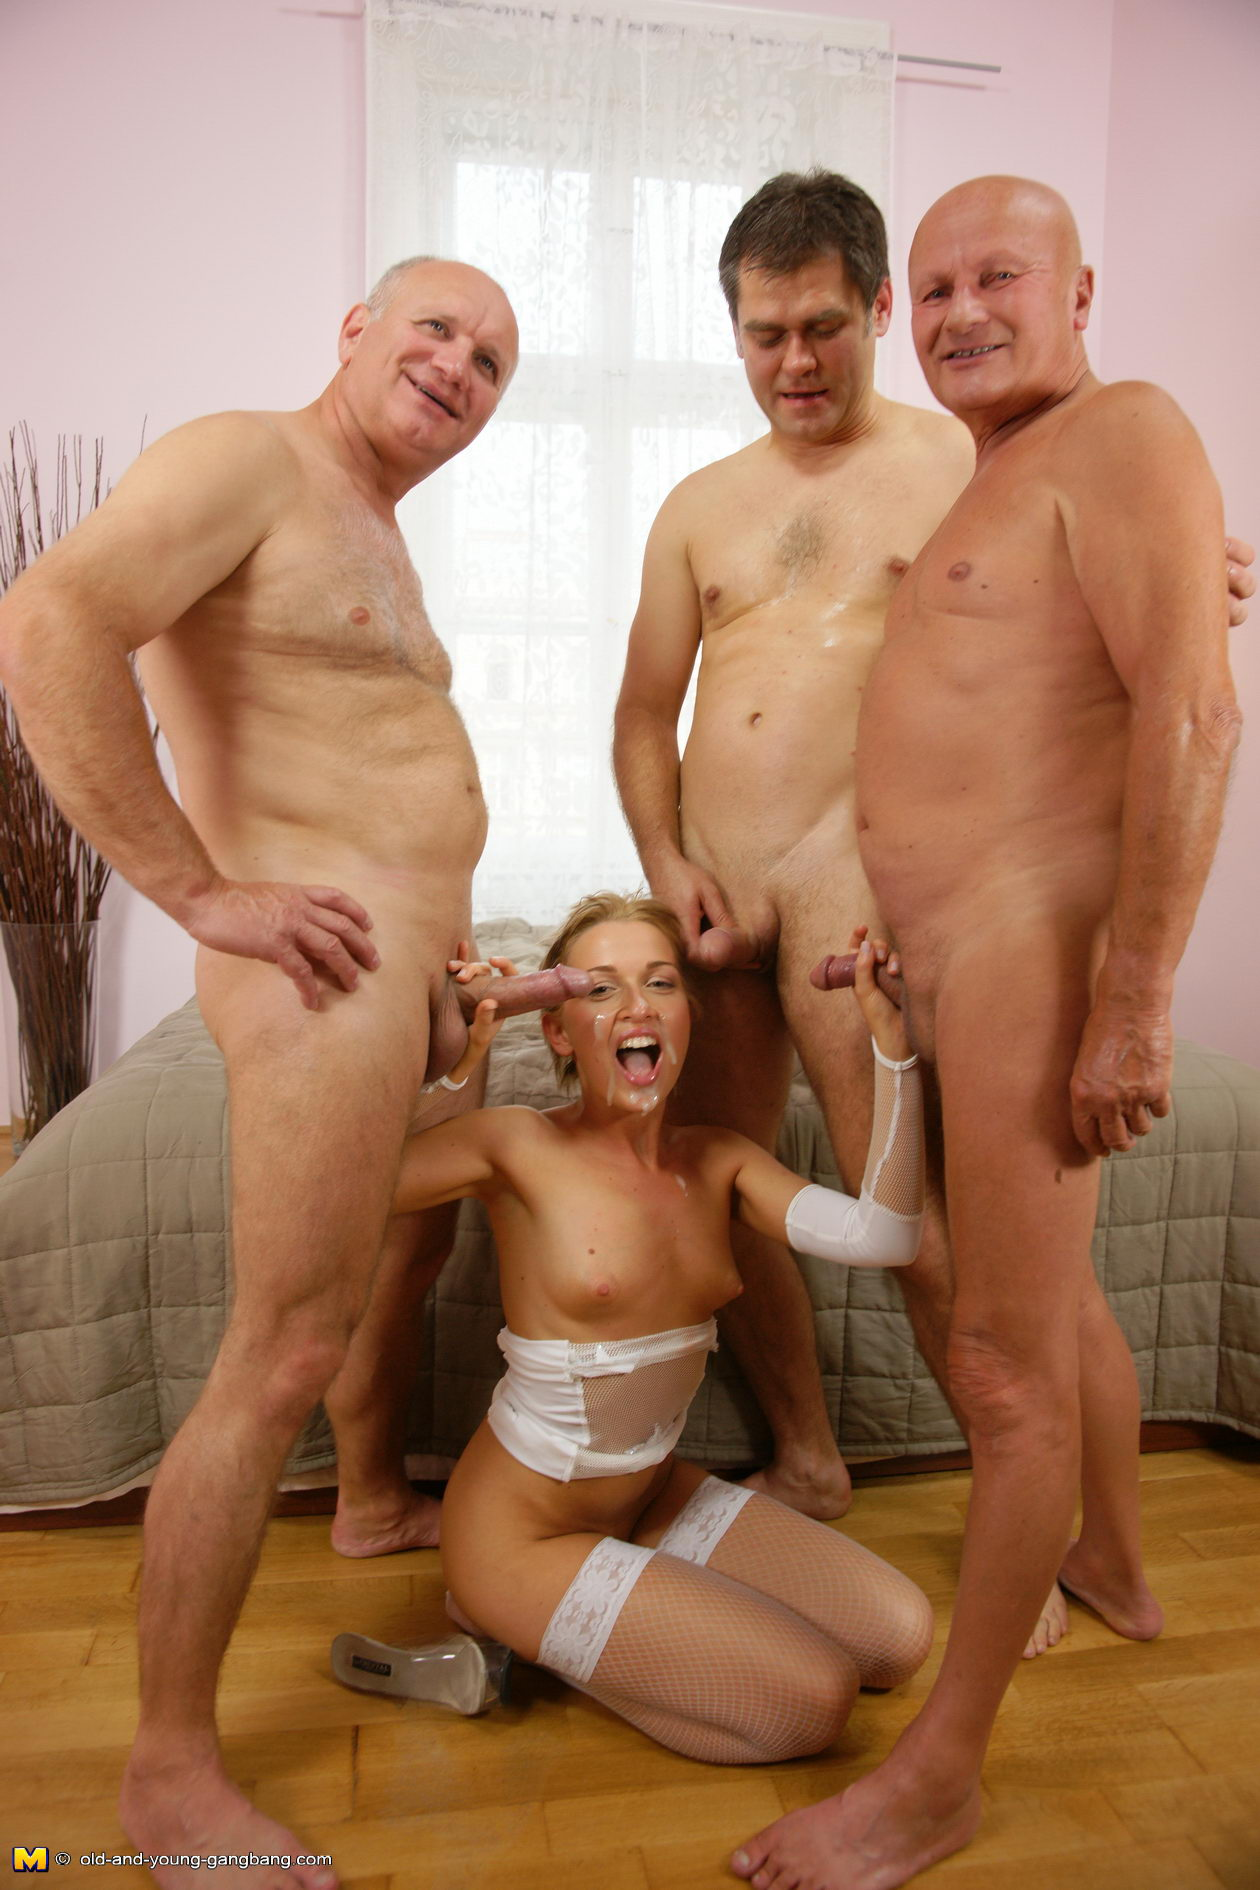 Opposite. Young naked hirls with old men join